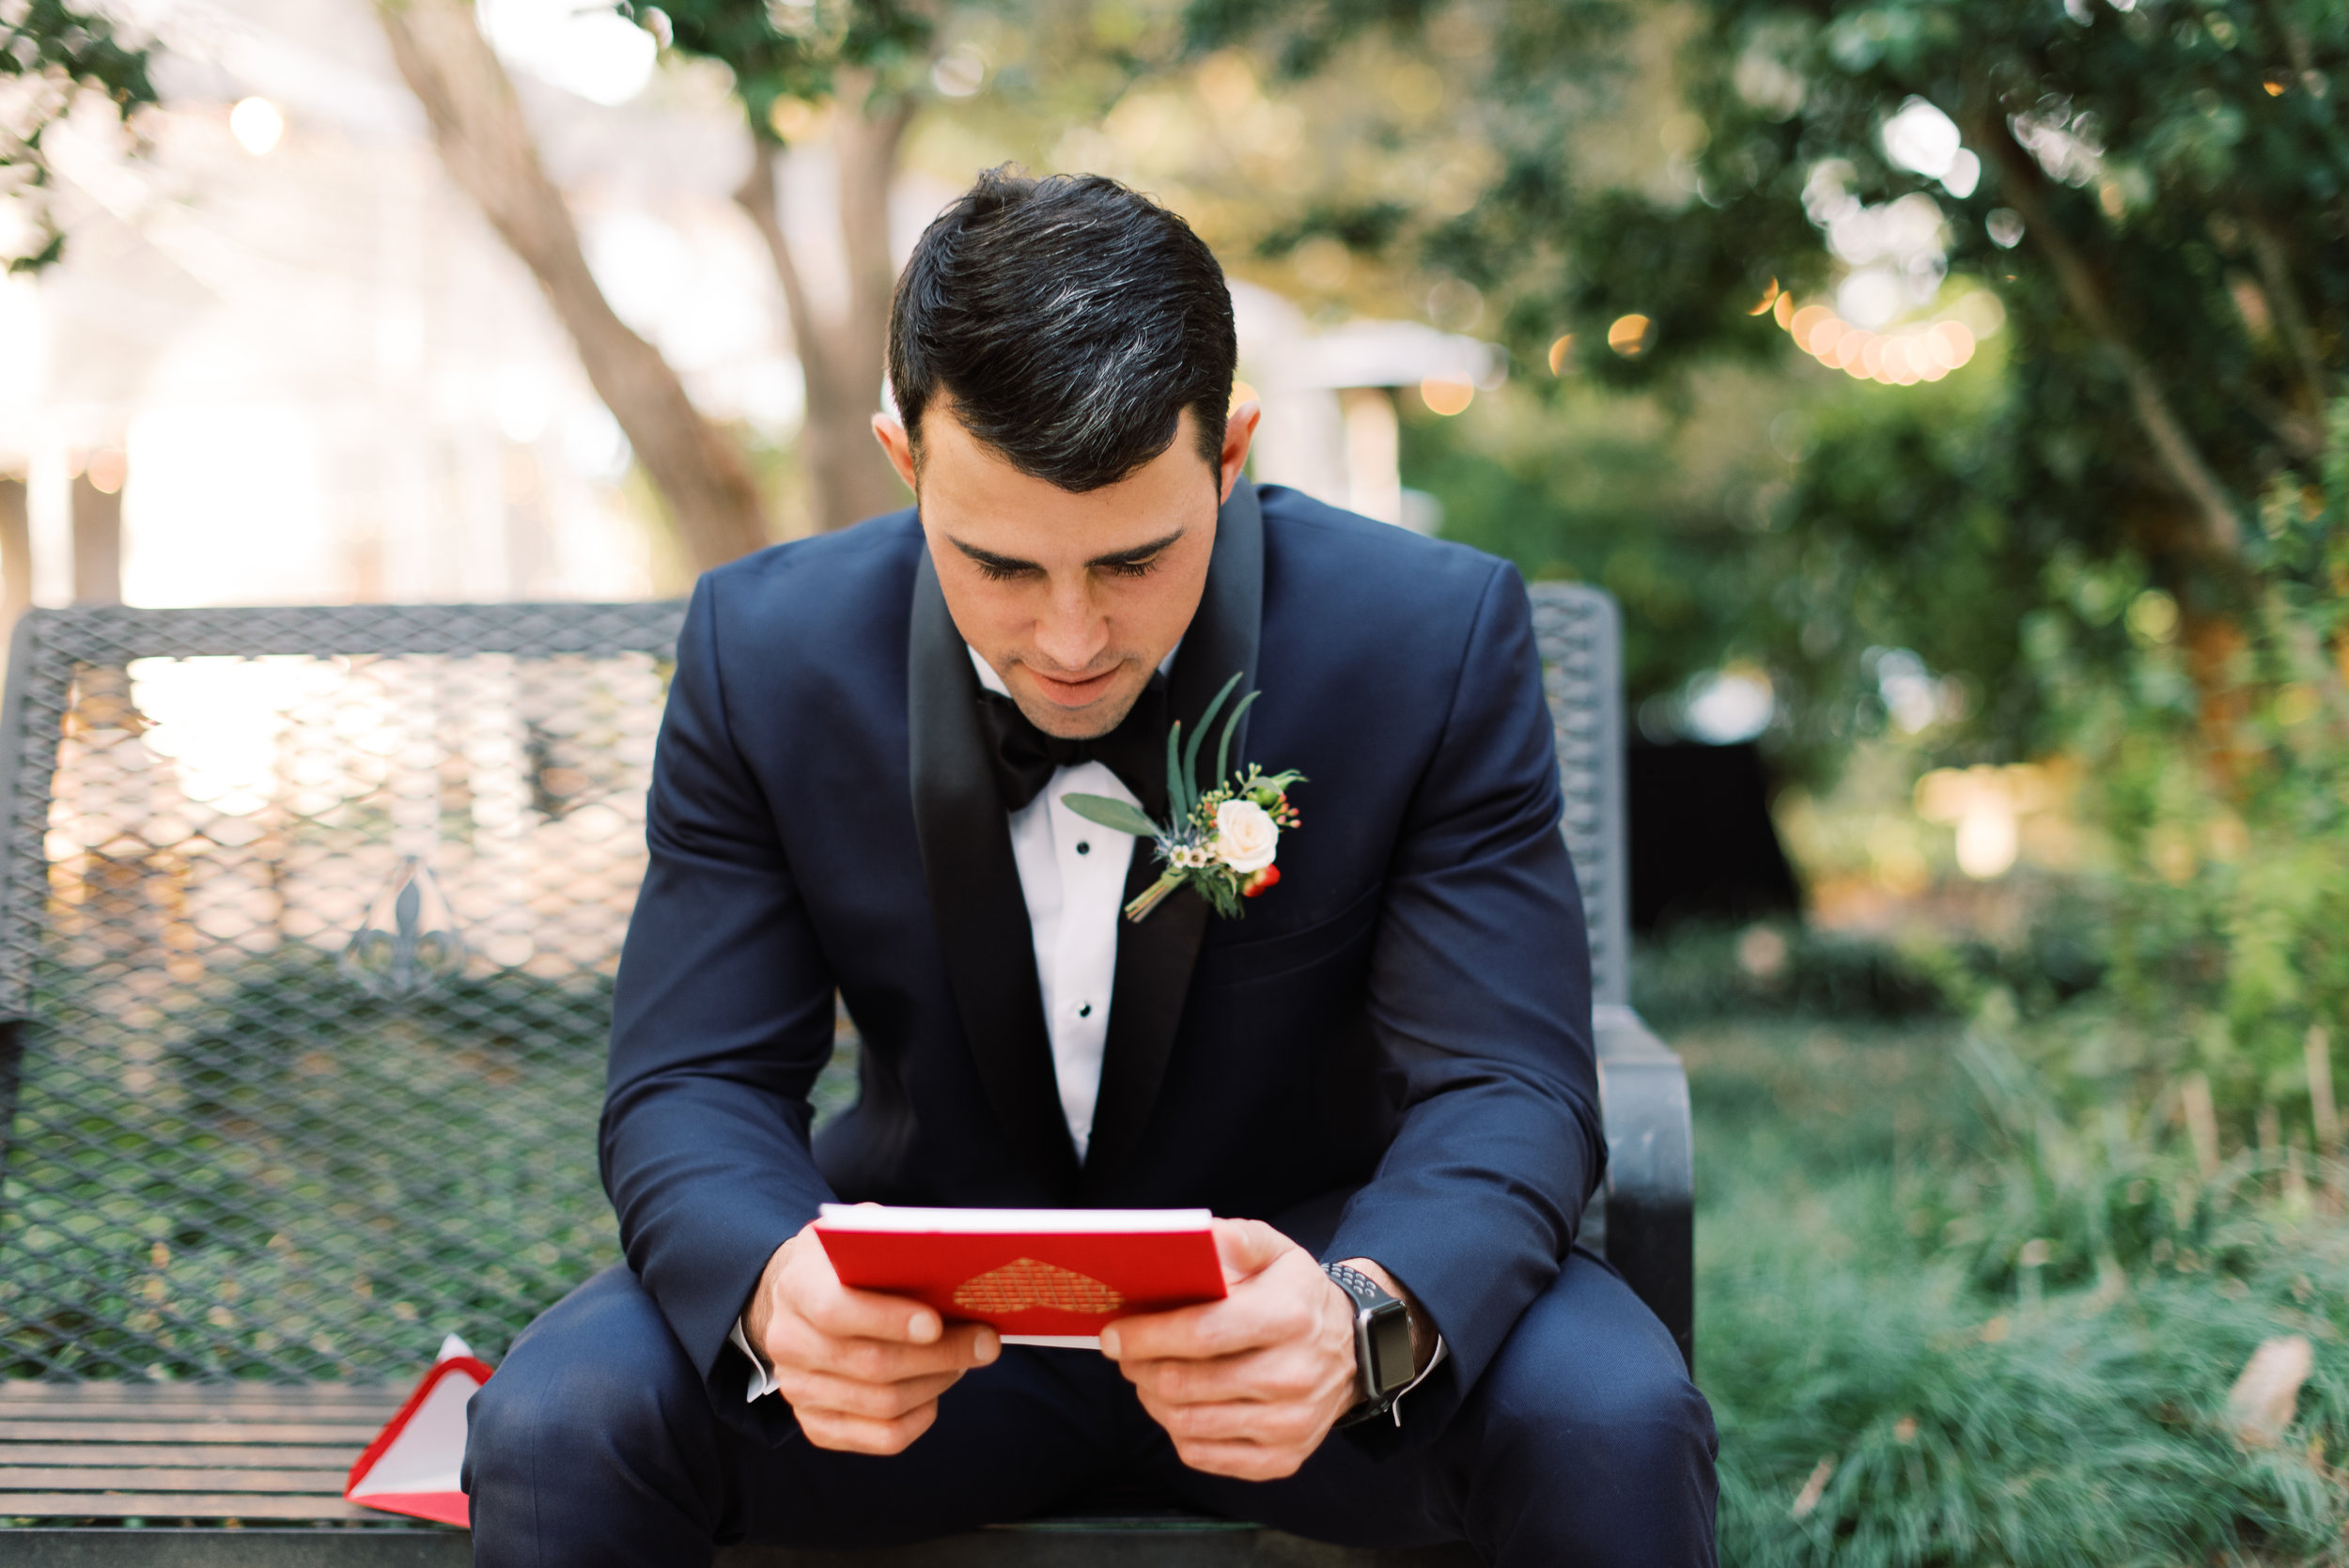 Southern Fete, Southern Wedding, Groom, Note from the Bride, Sarah Beth Photography, Peregrin's Florist